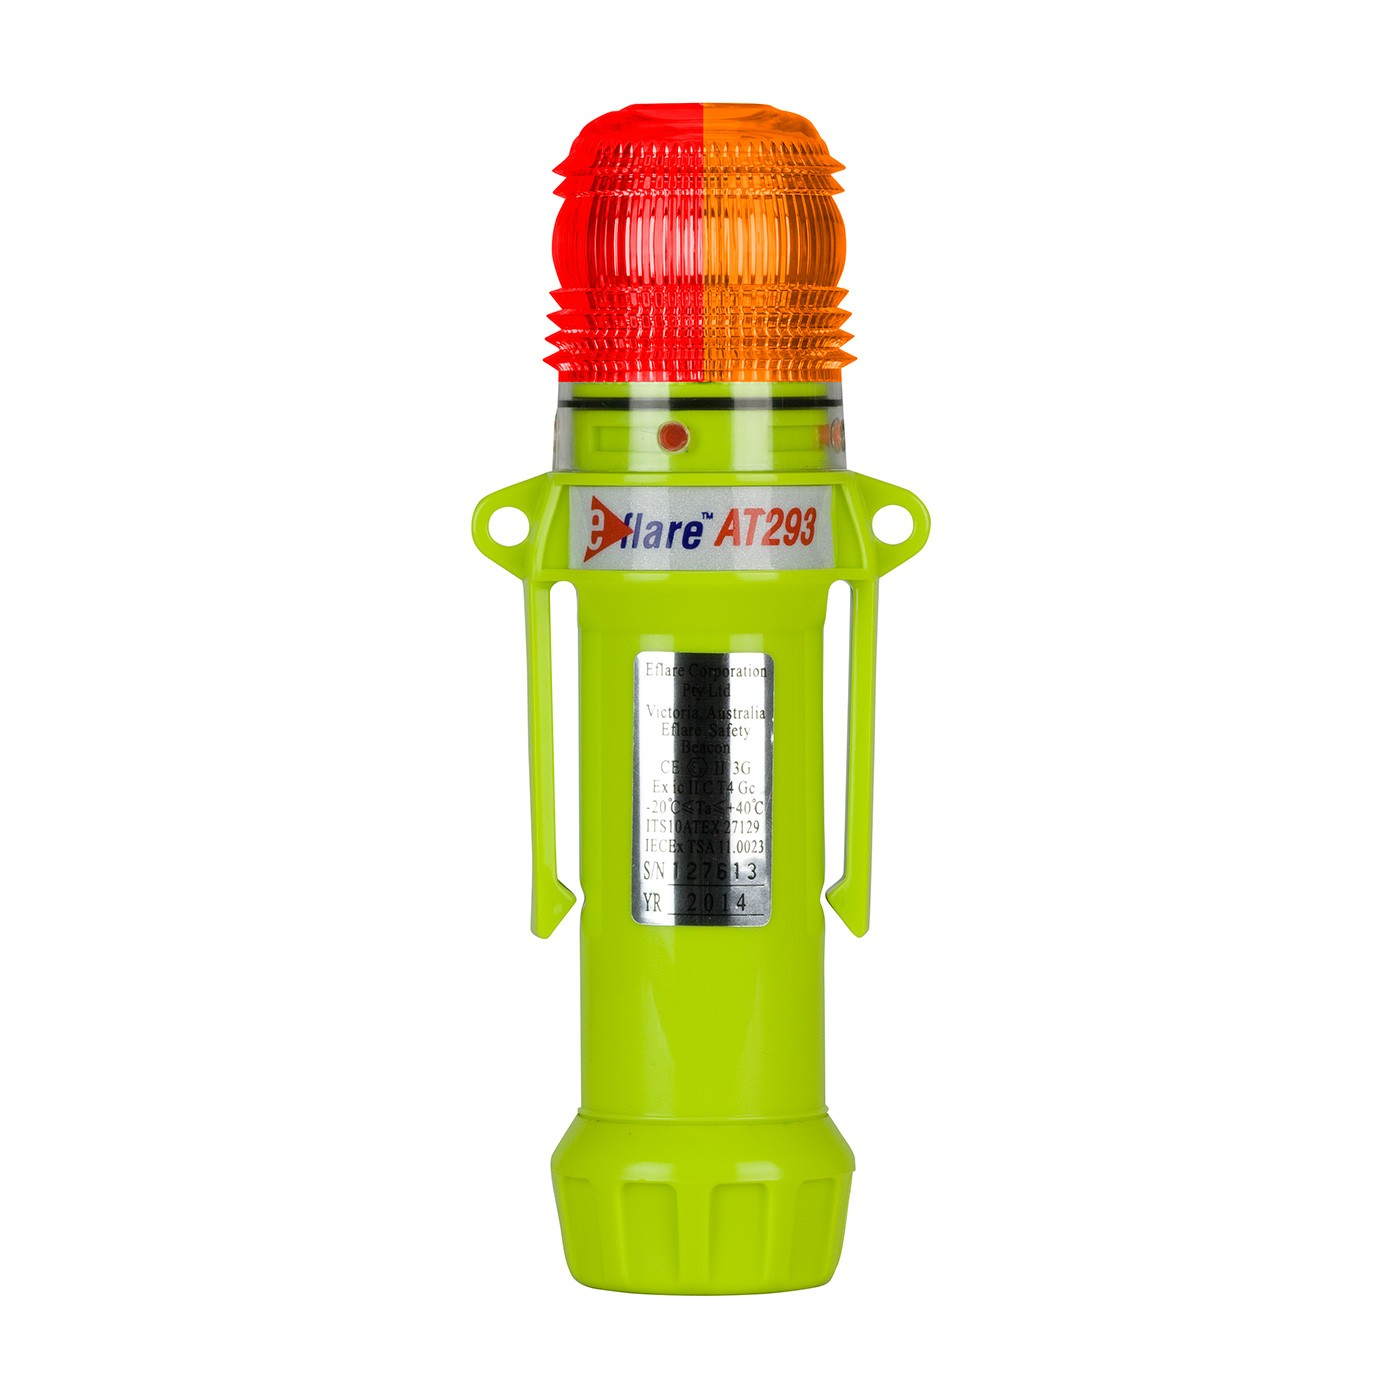 """Eflare™ 8"""" Safety & Emergency Beacon - Alternating Red/Amber  (#939-AT293-R/A)"""